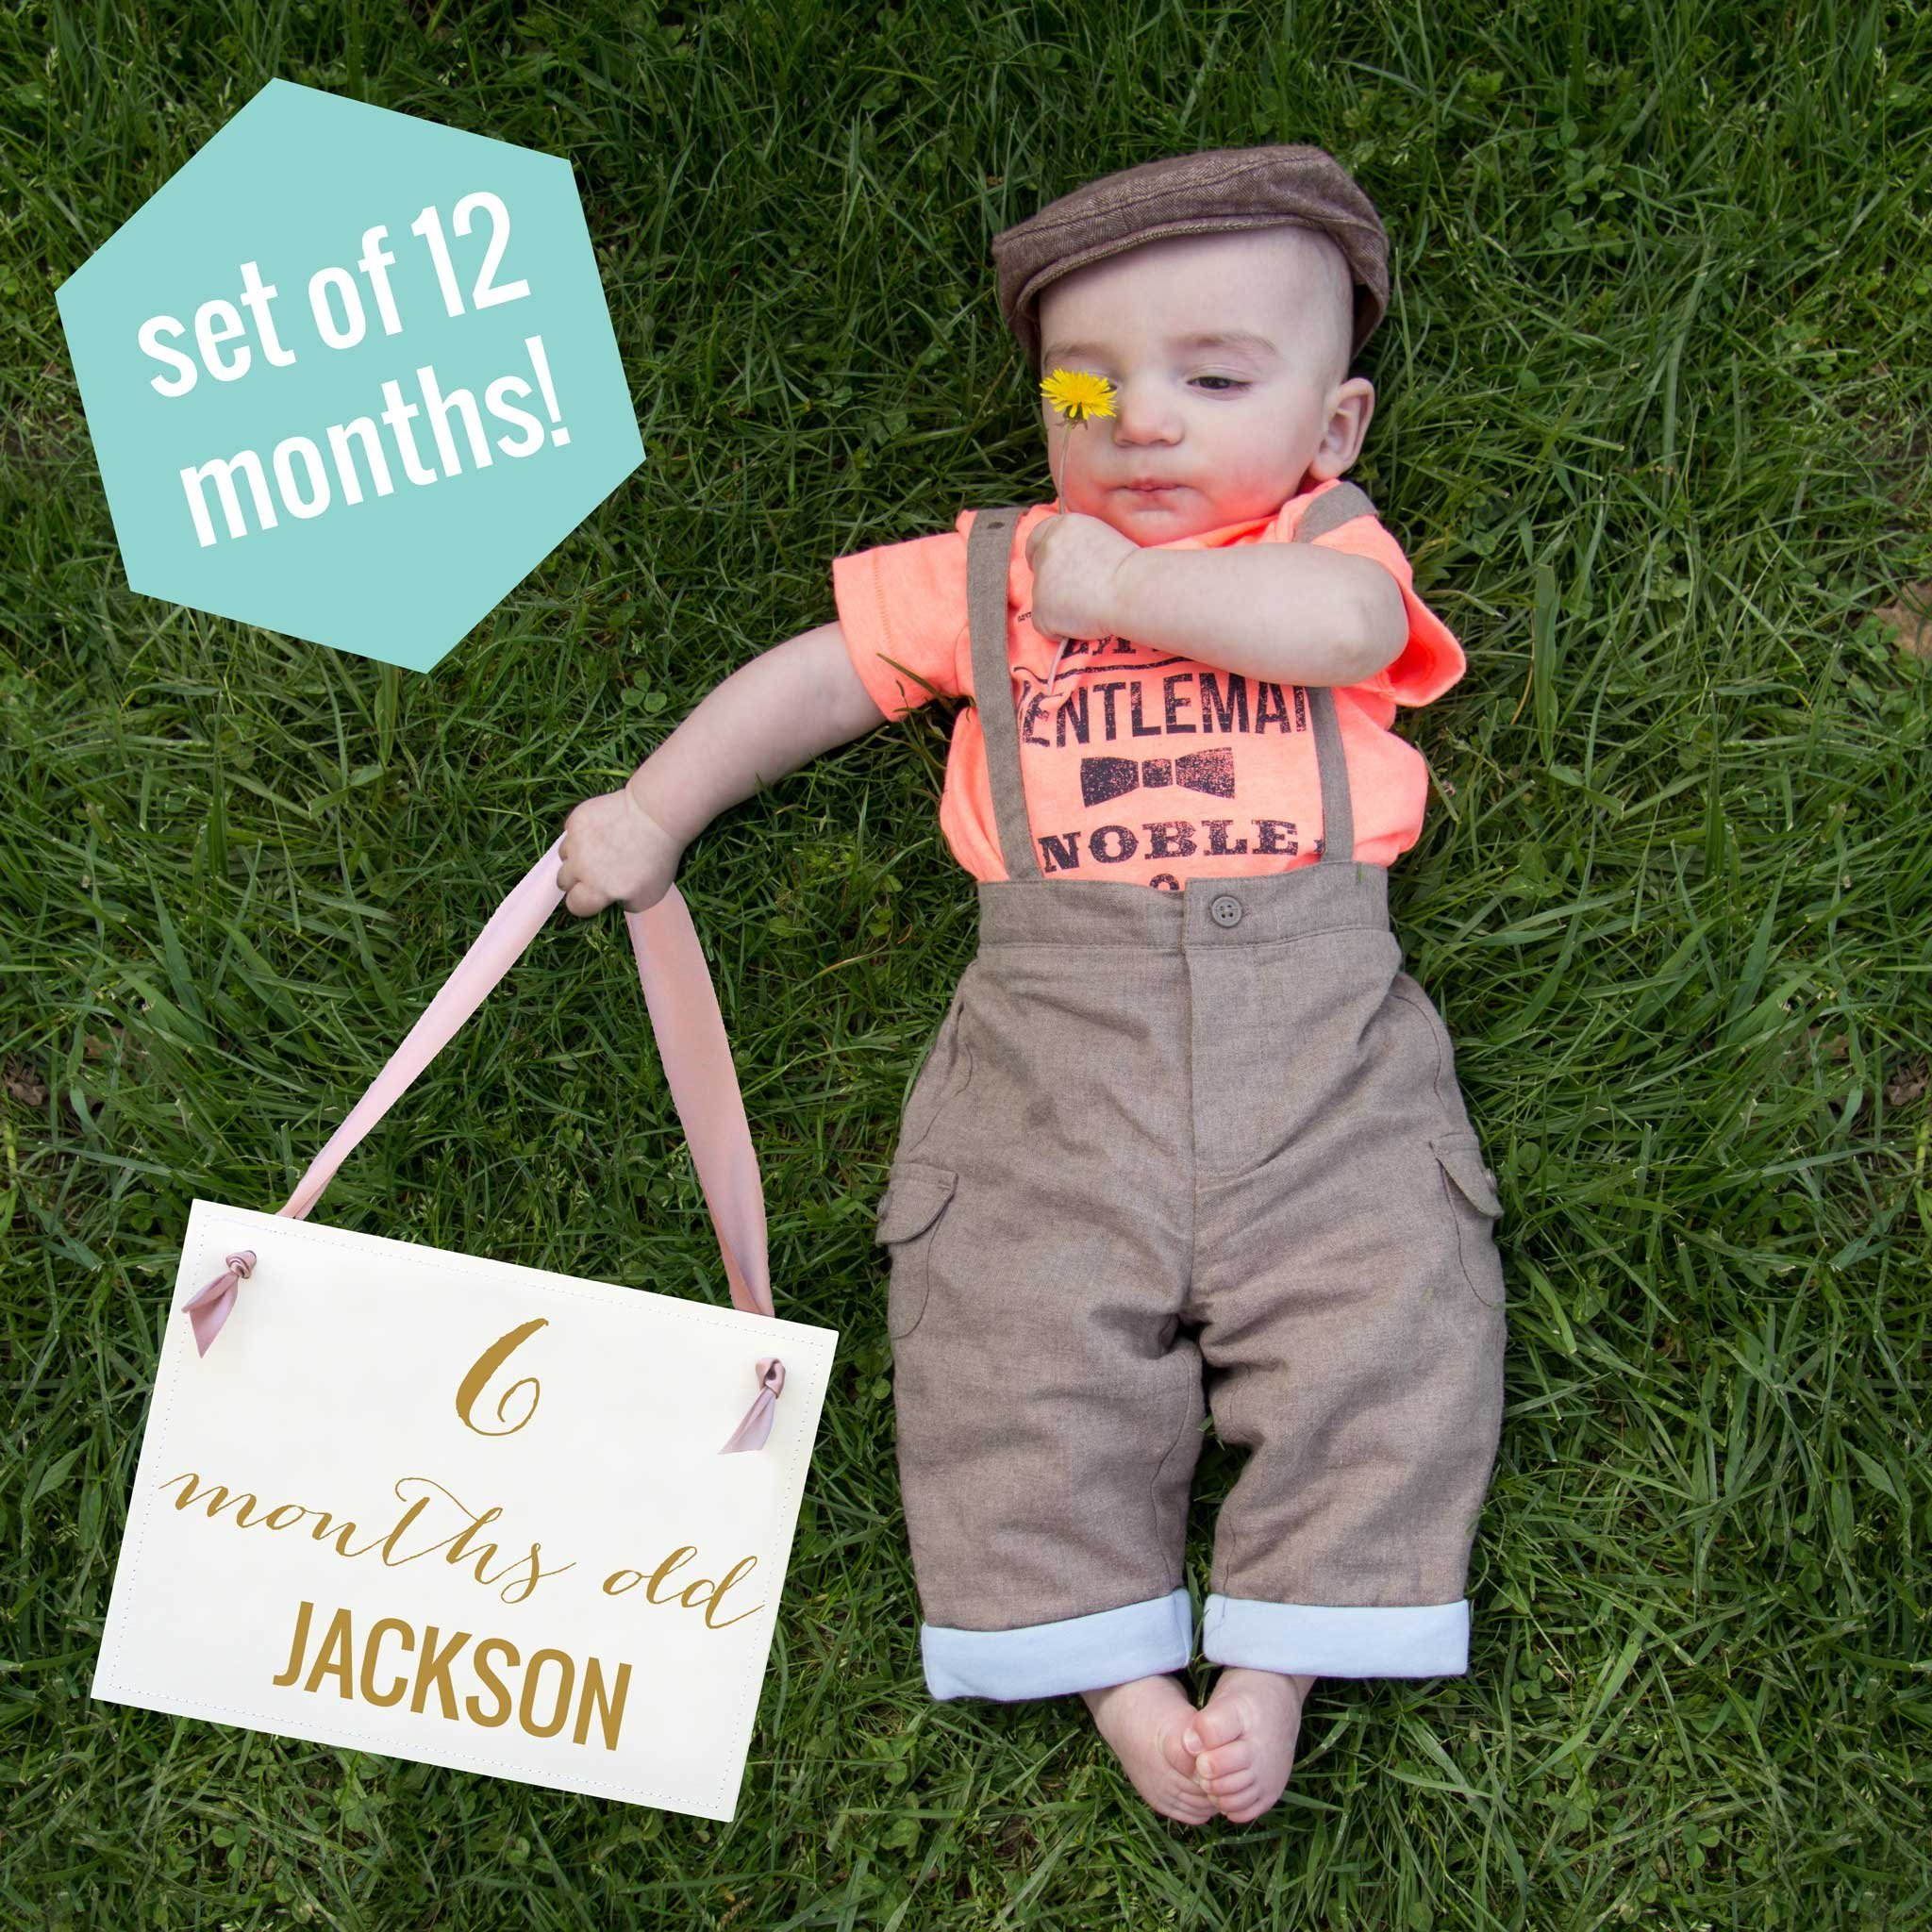 Monthly Banners for Baby Pictures 1 Month - 1 Year (set of 12) Personalized